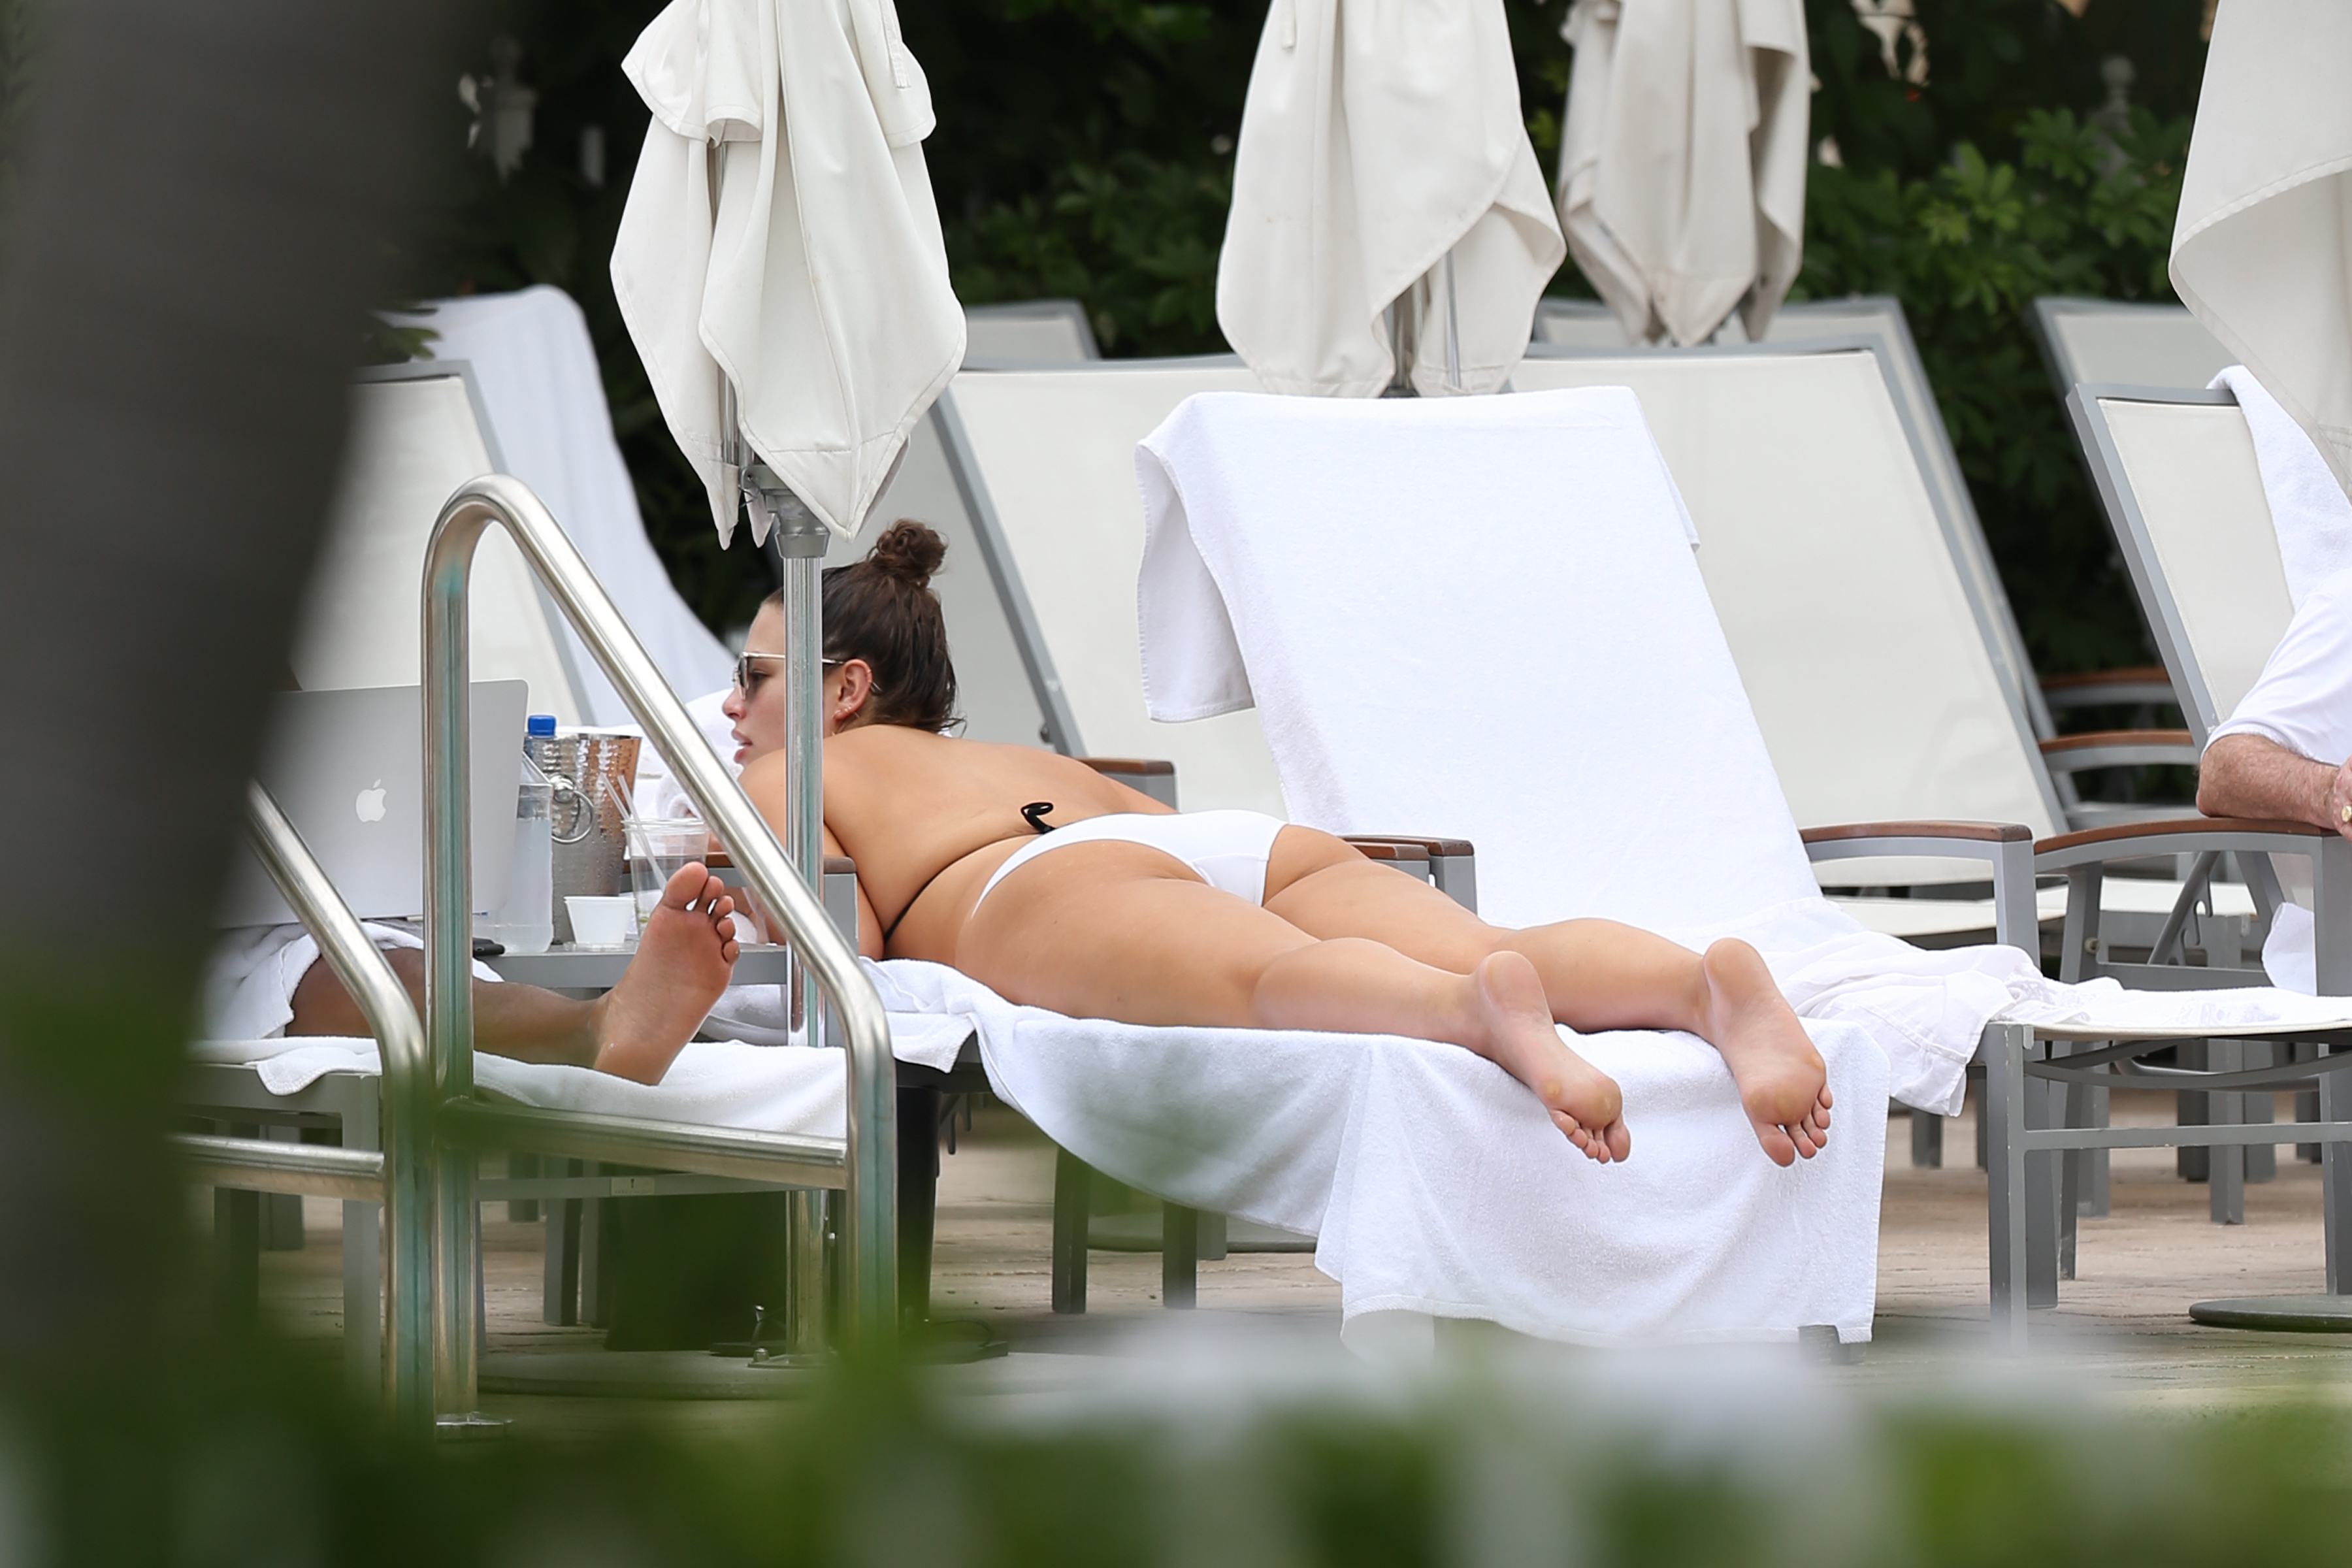 ashley-graham-laying-poolside-in-miami-march-2nd-2017-5.jpg